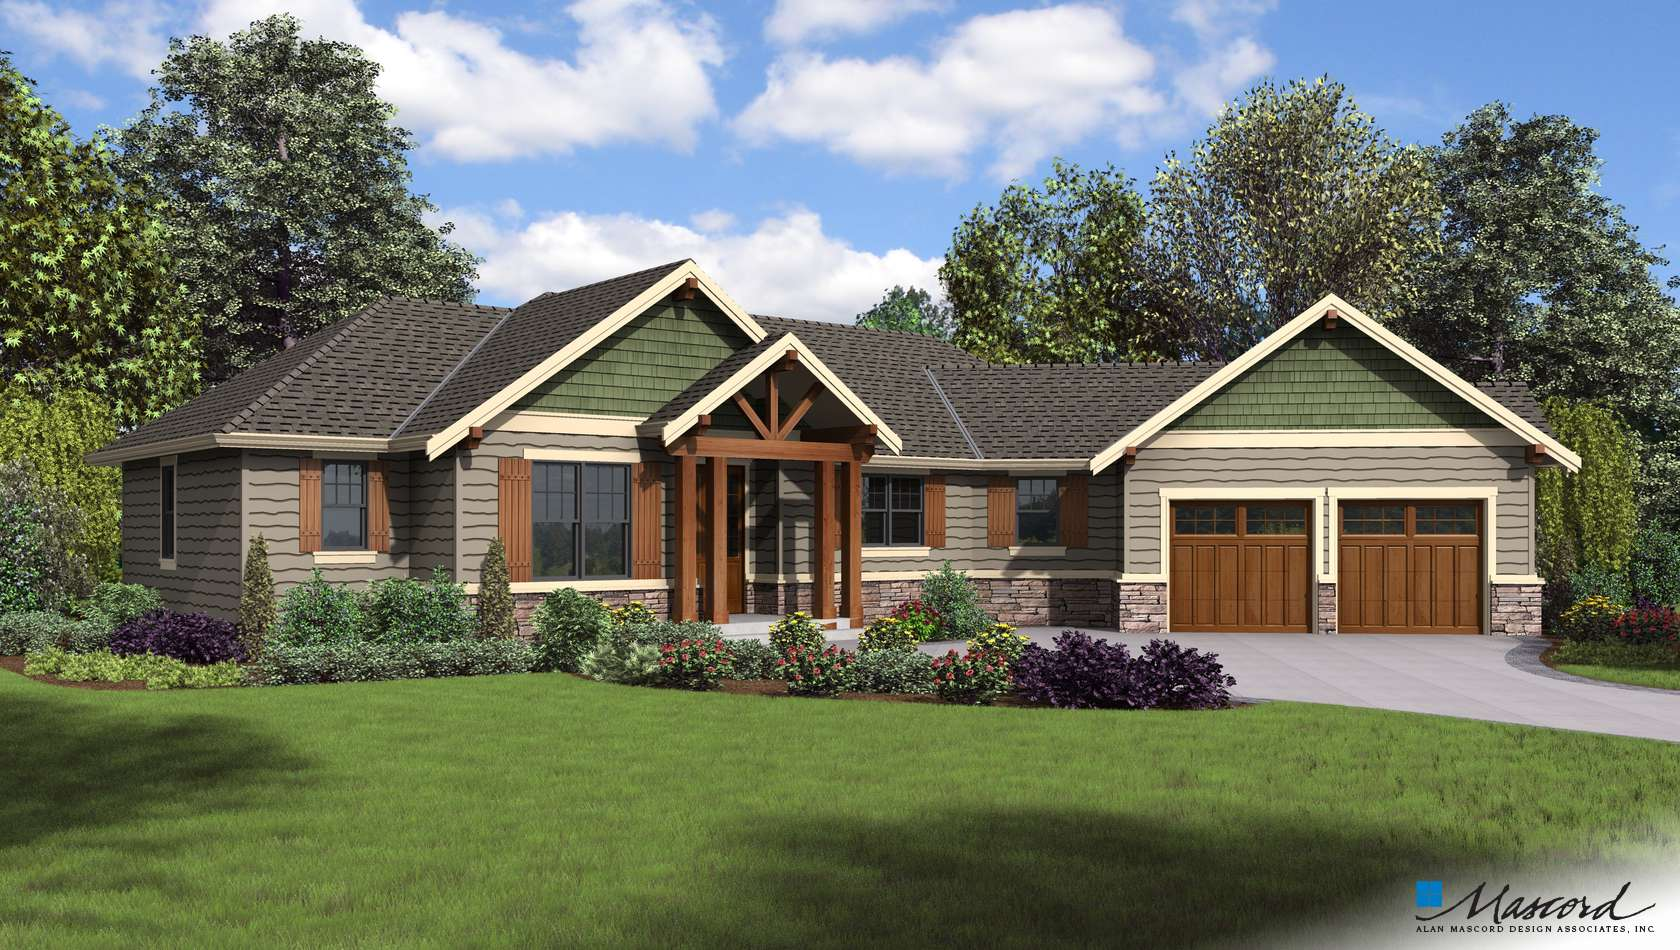 Main image for house plan B1177: The